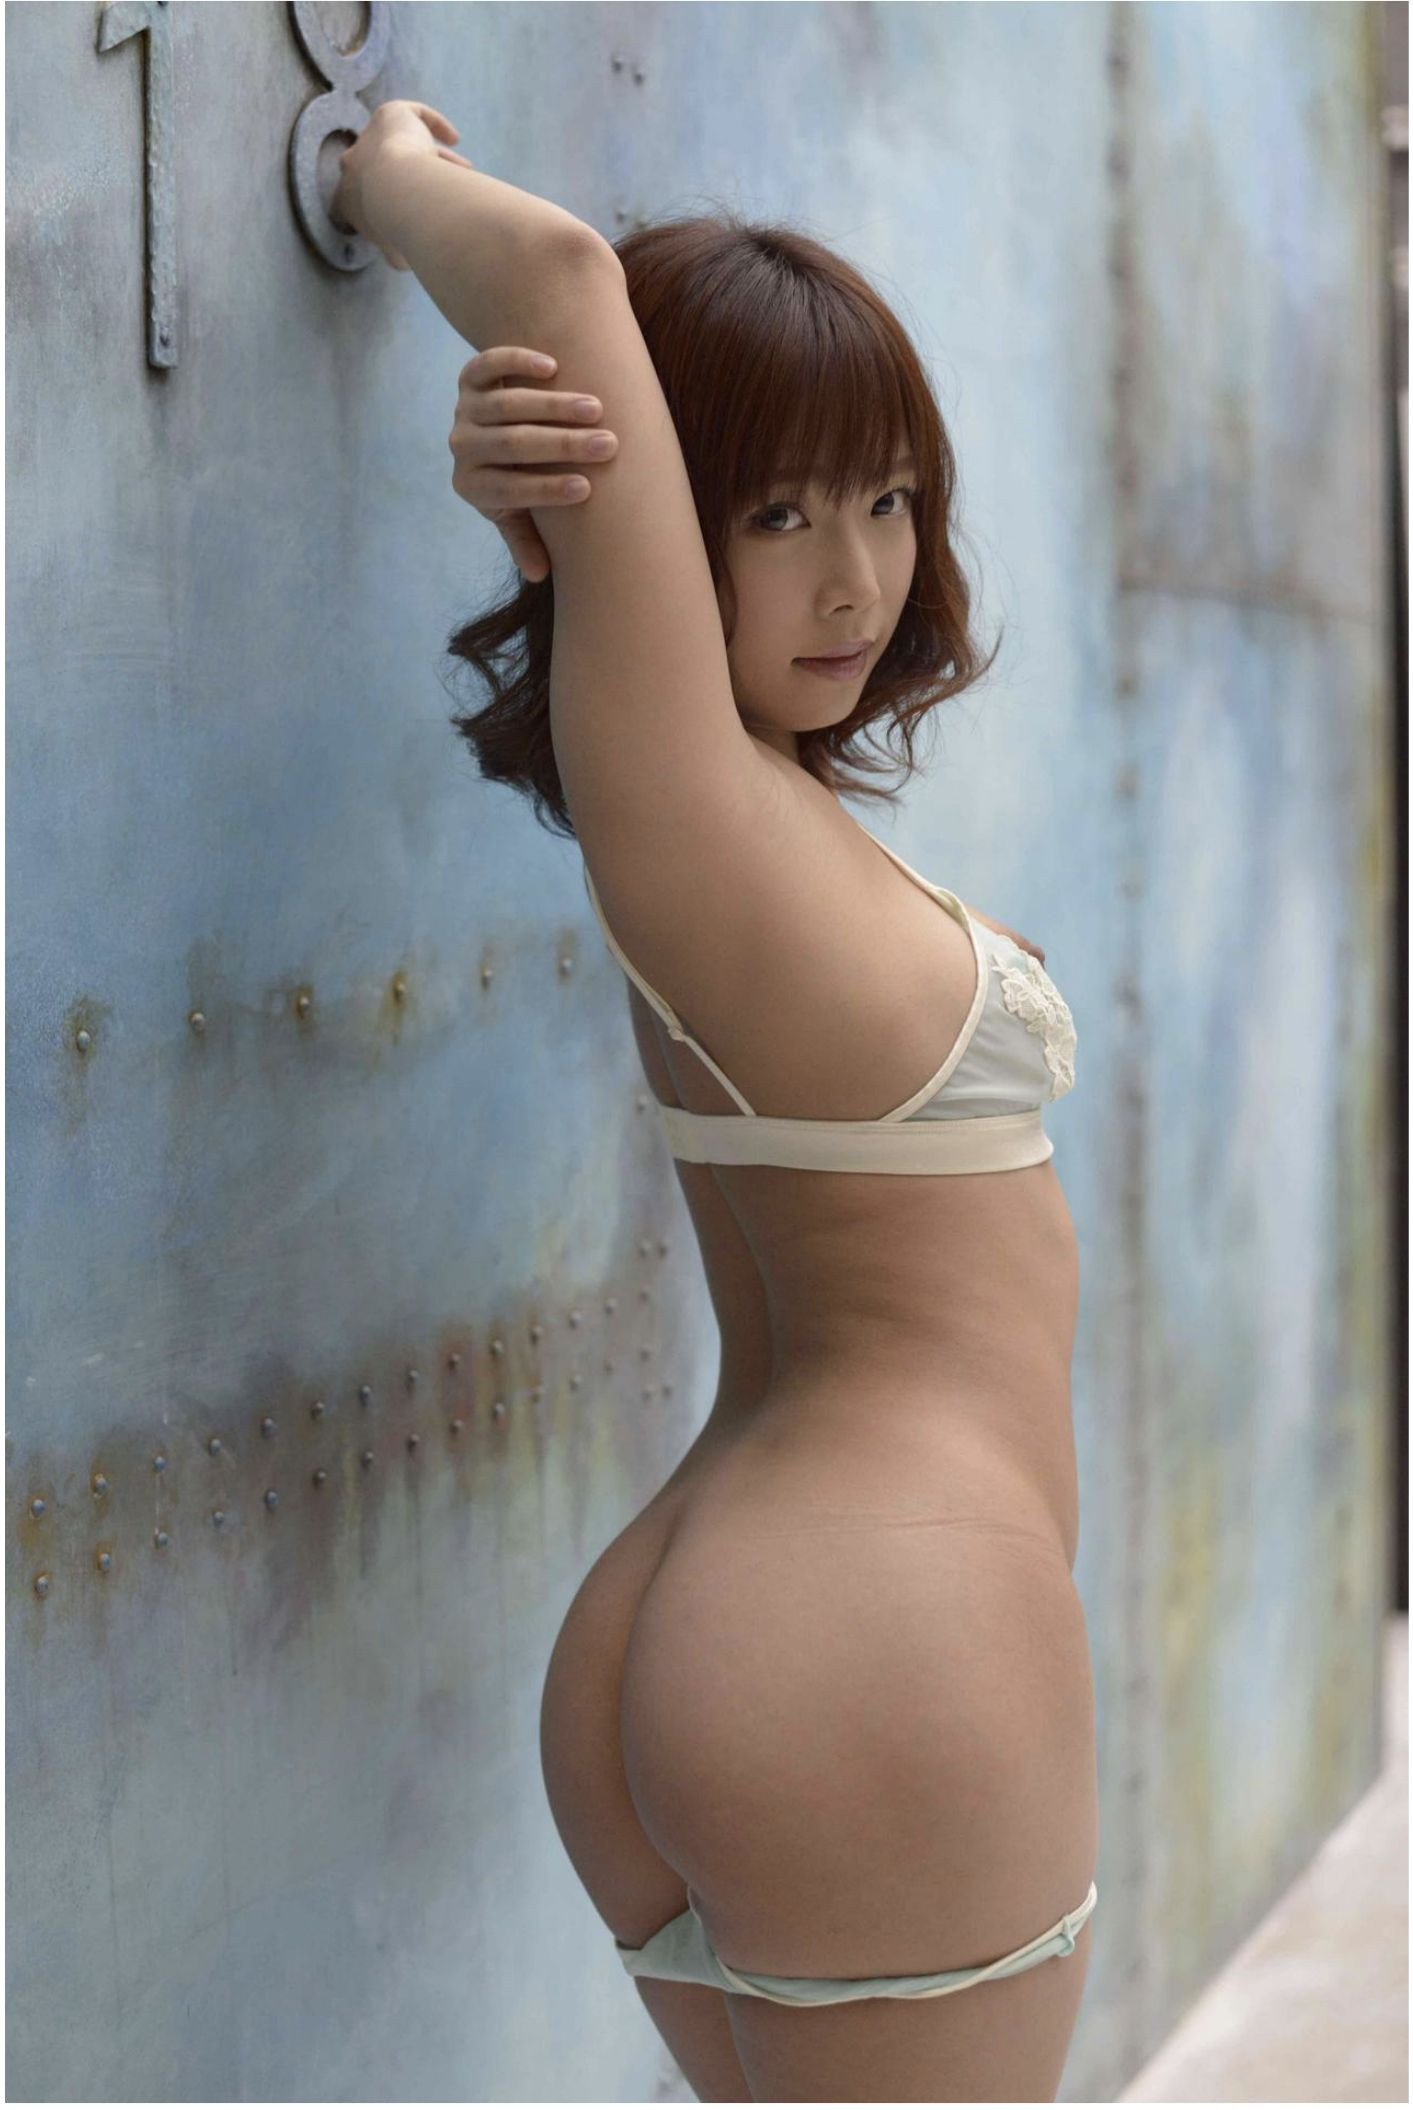 SOFT ON DEMAND GRAVURE COLLECTION 紗倉まな04 photo 087